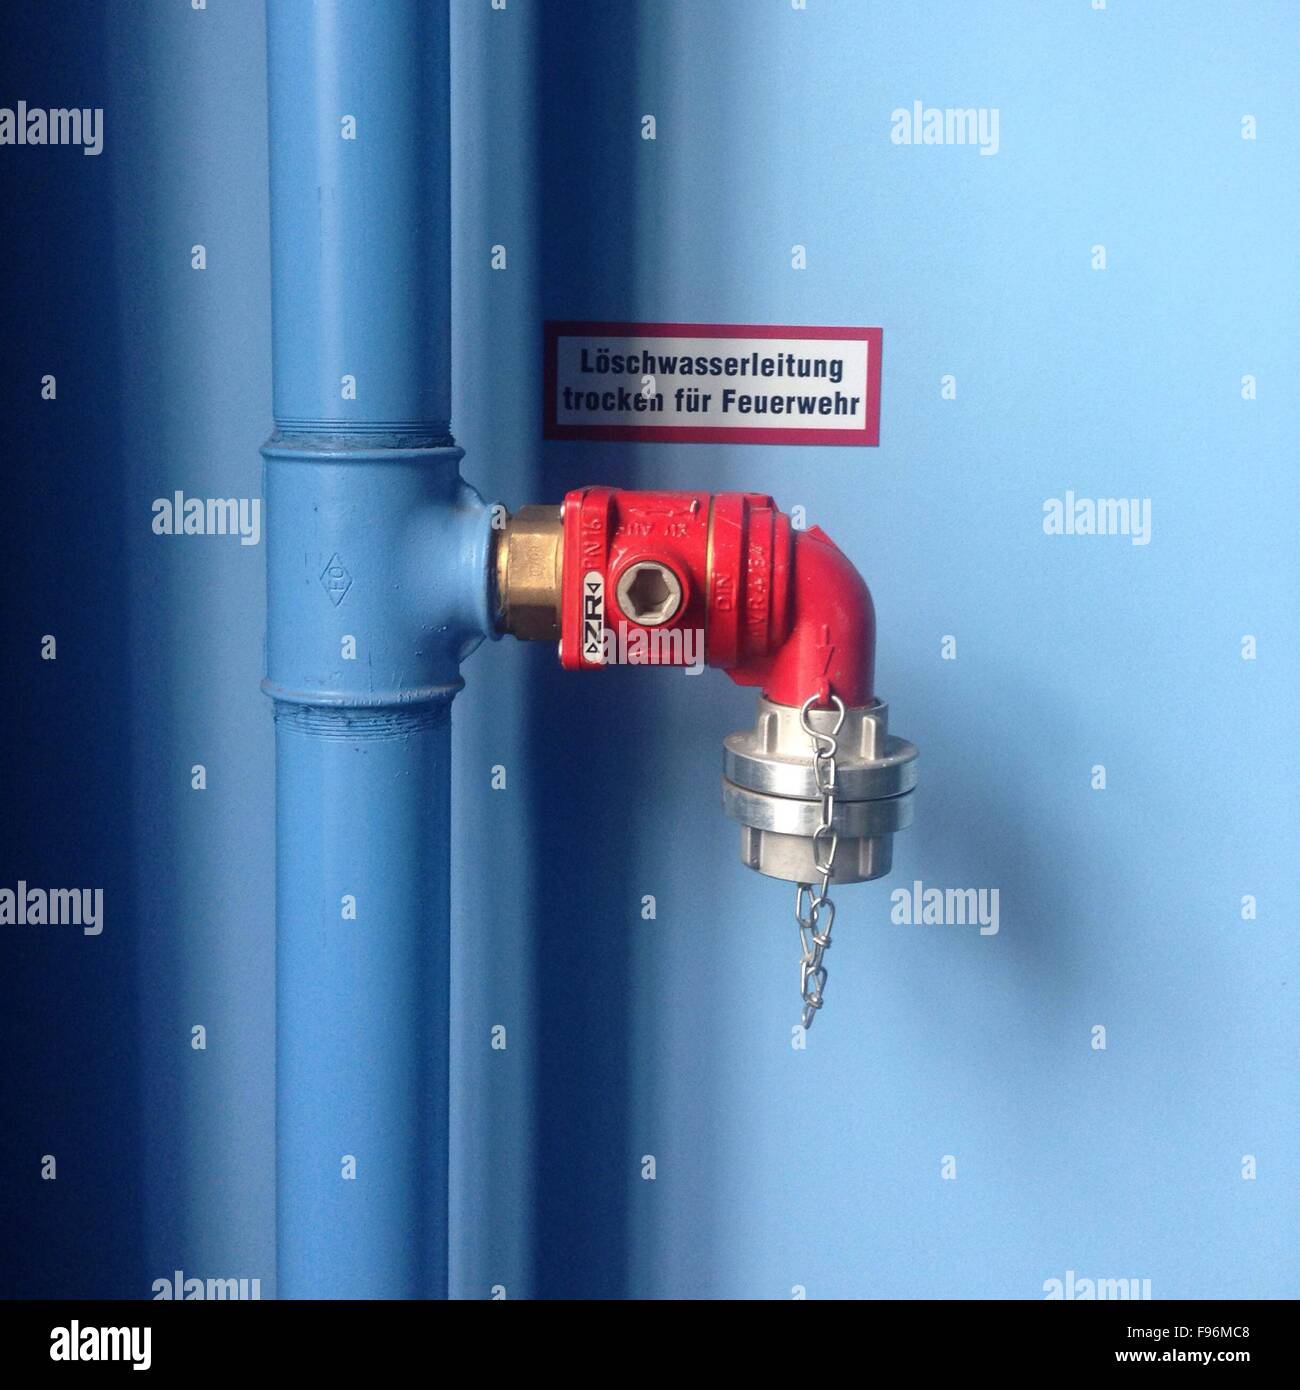 Close-Up Of Fire Pipe Against Wall - Stock Image